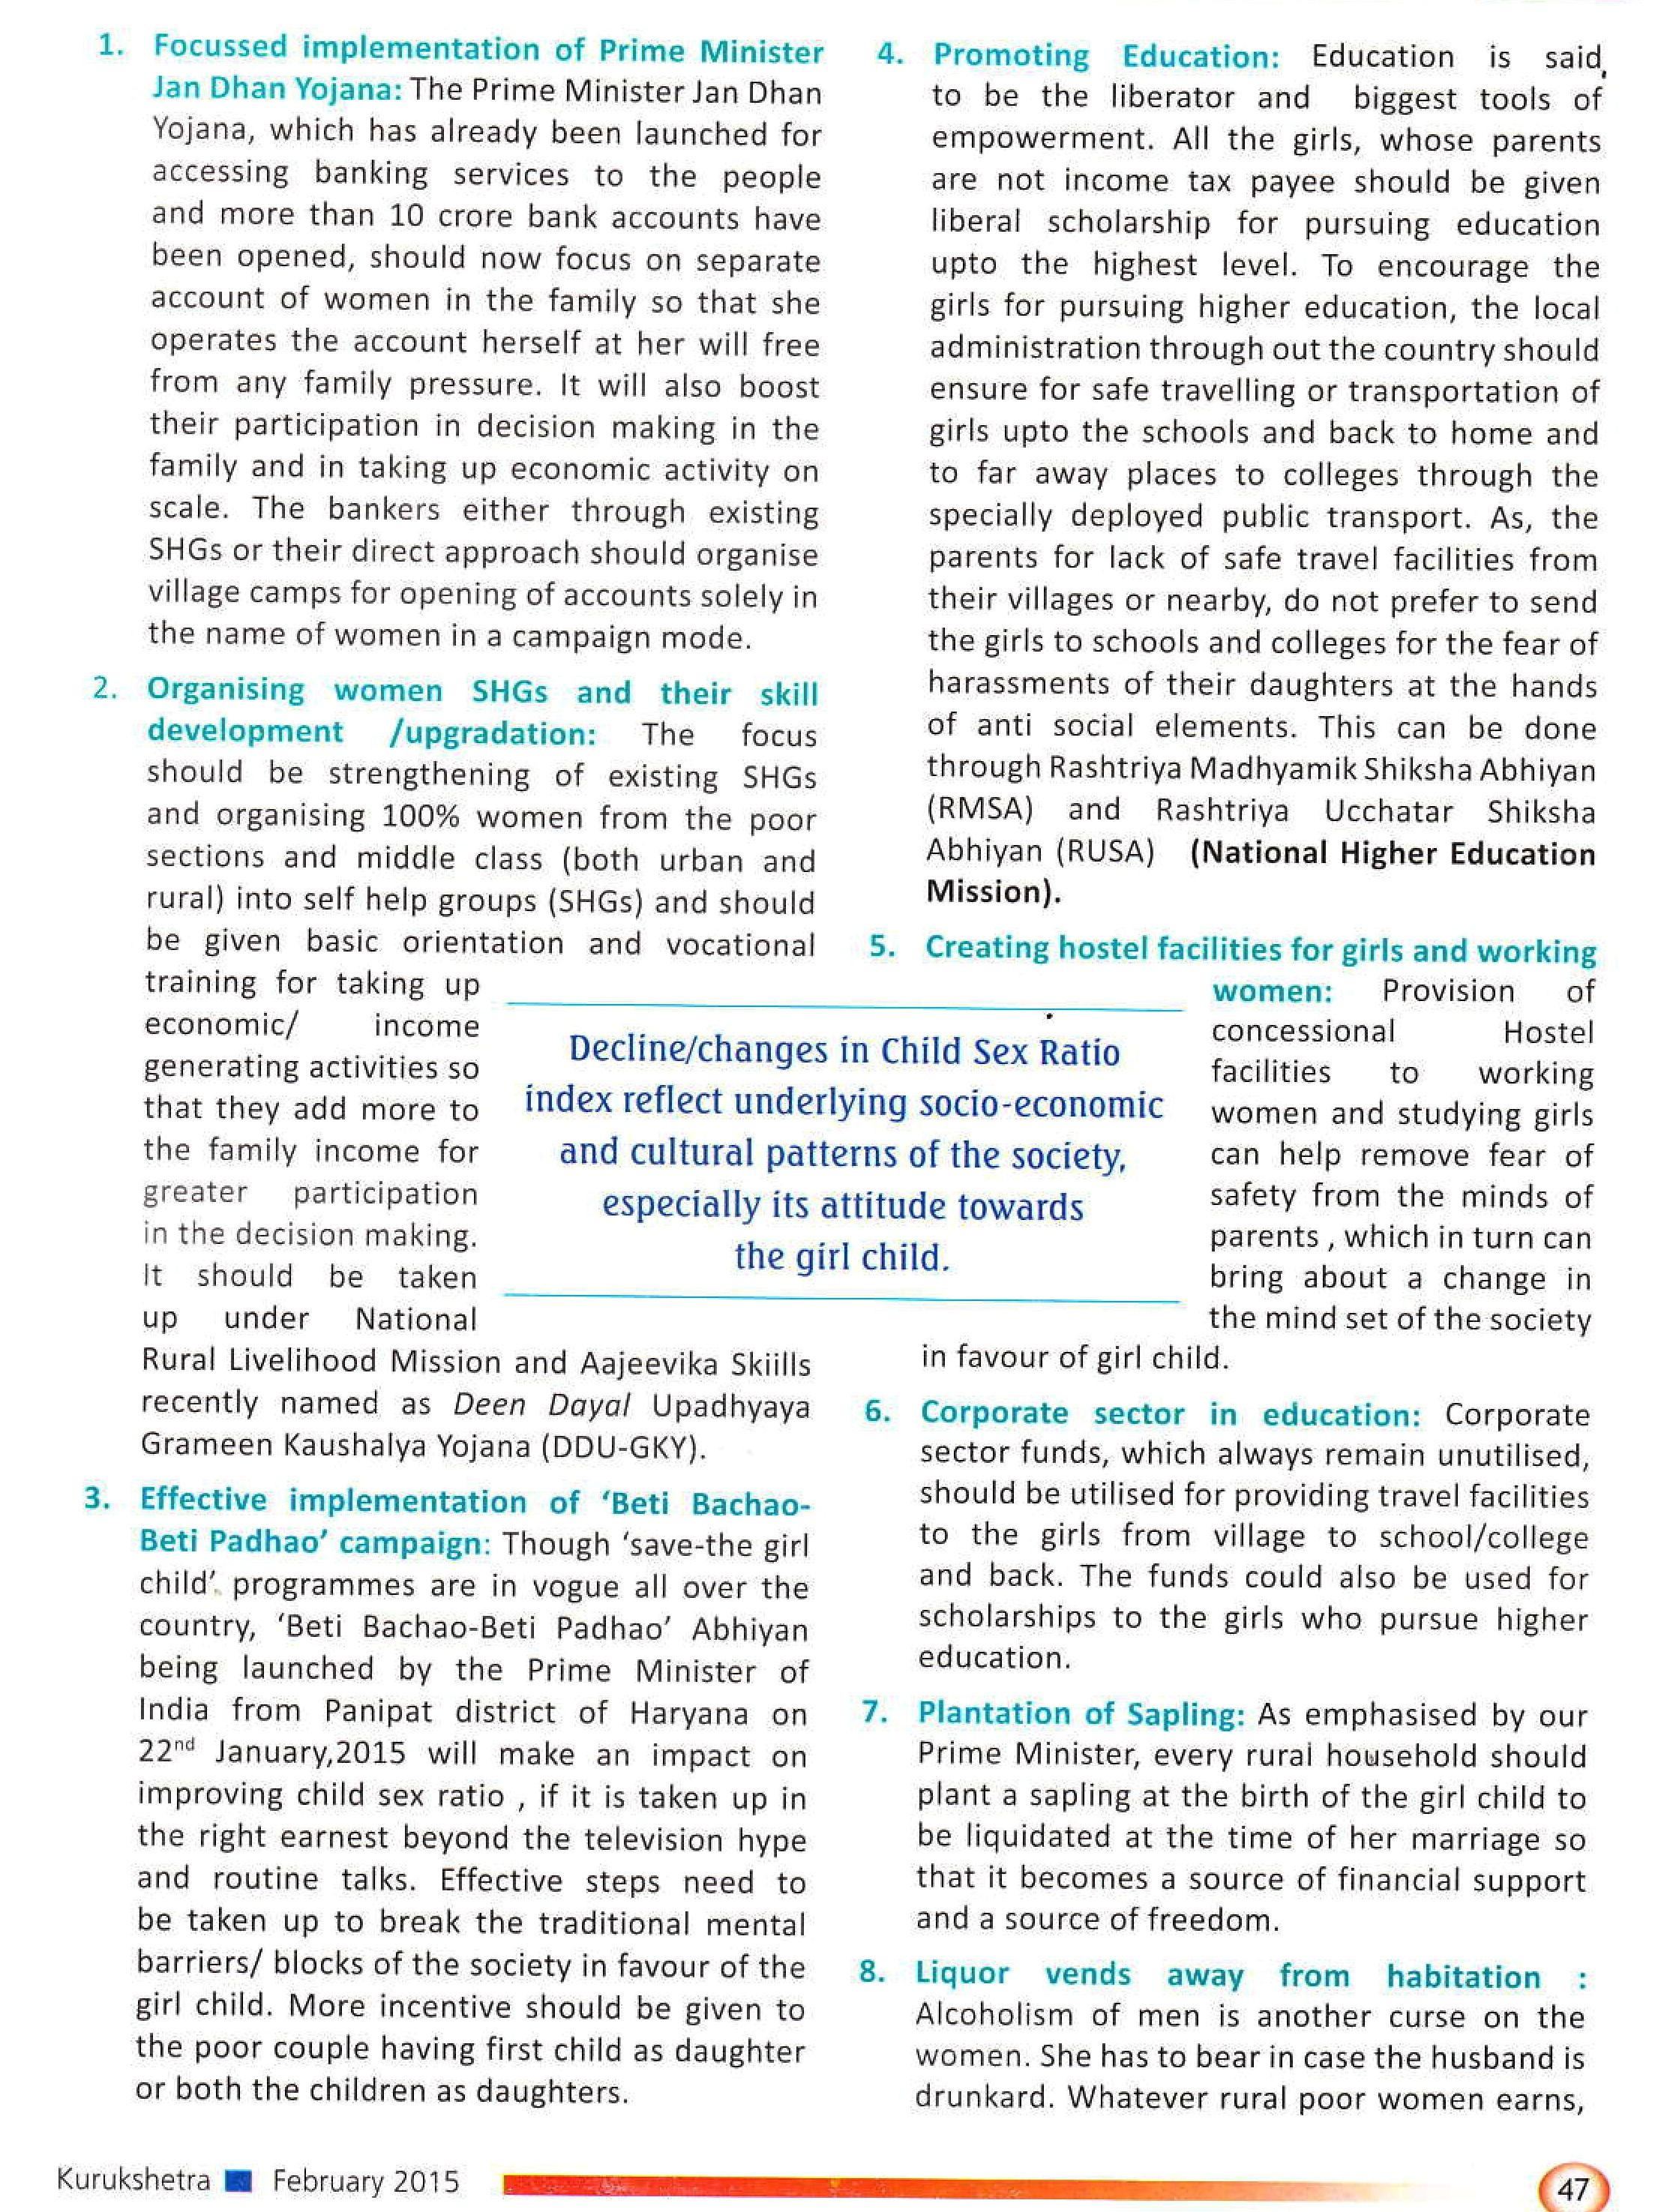 An Essay on Beti Bachao Beti Padhao for Students, Kids and